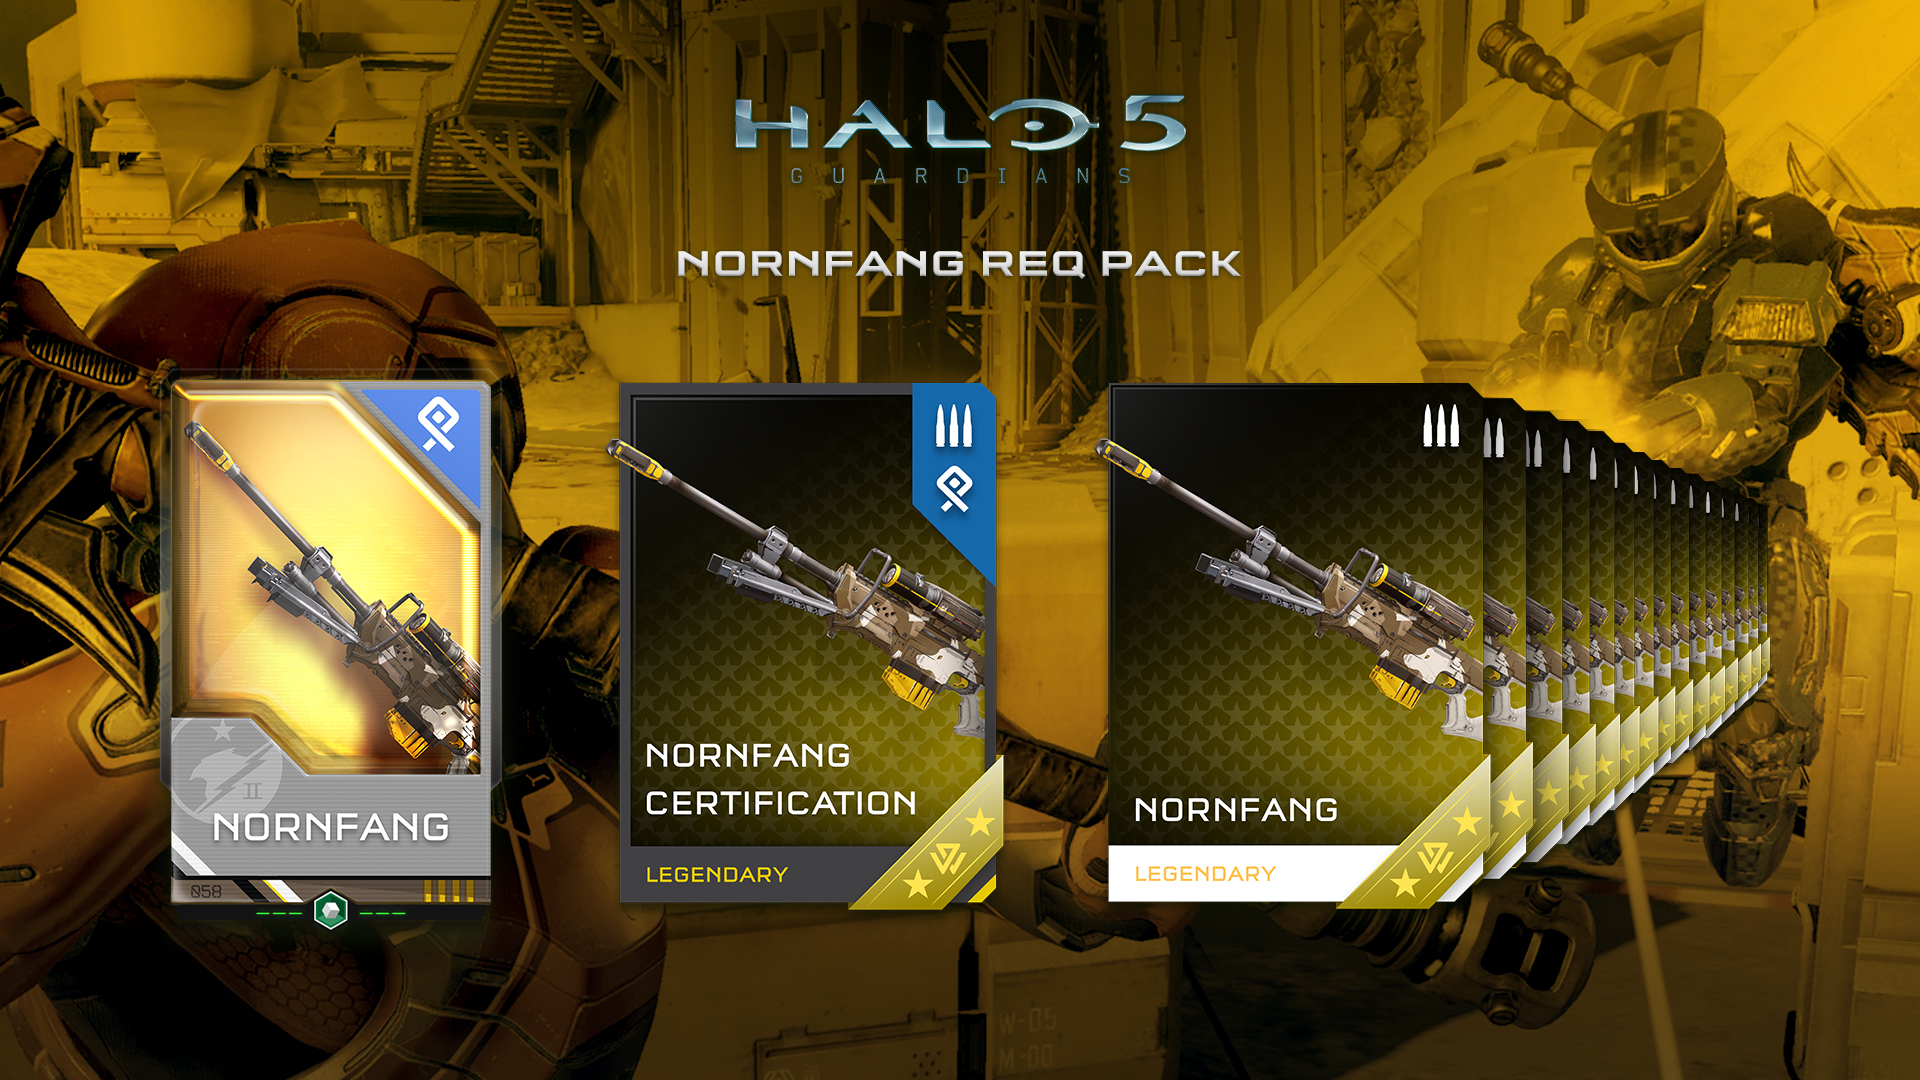 Nornfang Mythic pack <br> available for a limited time